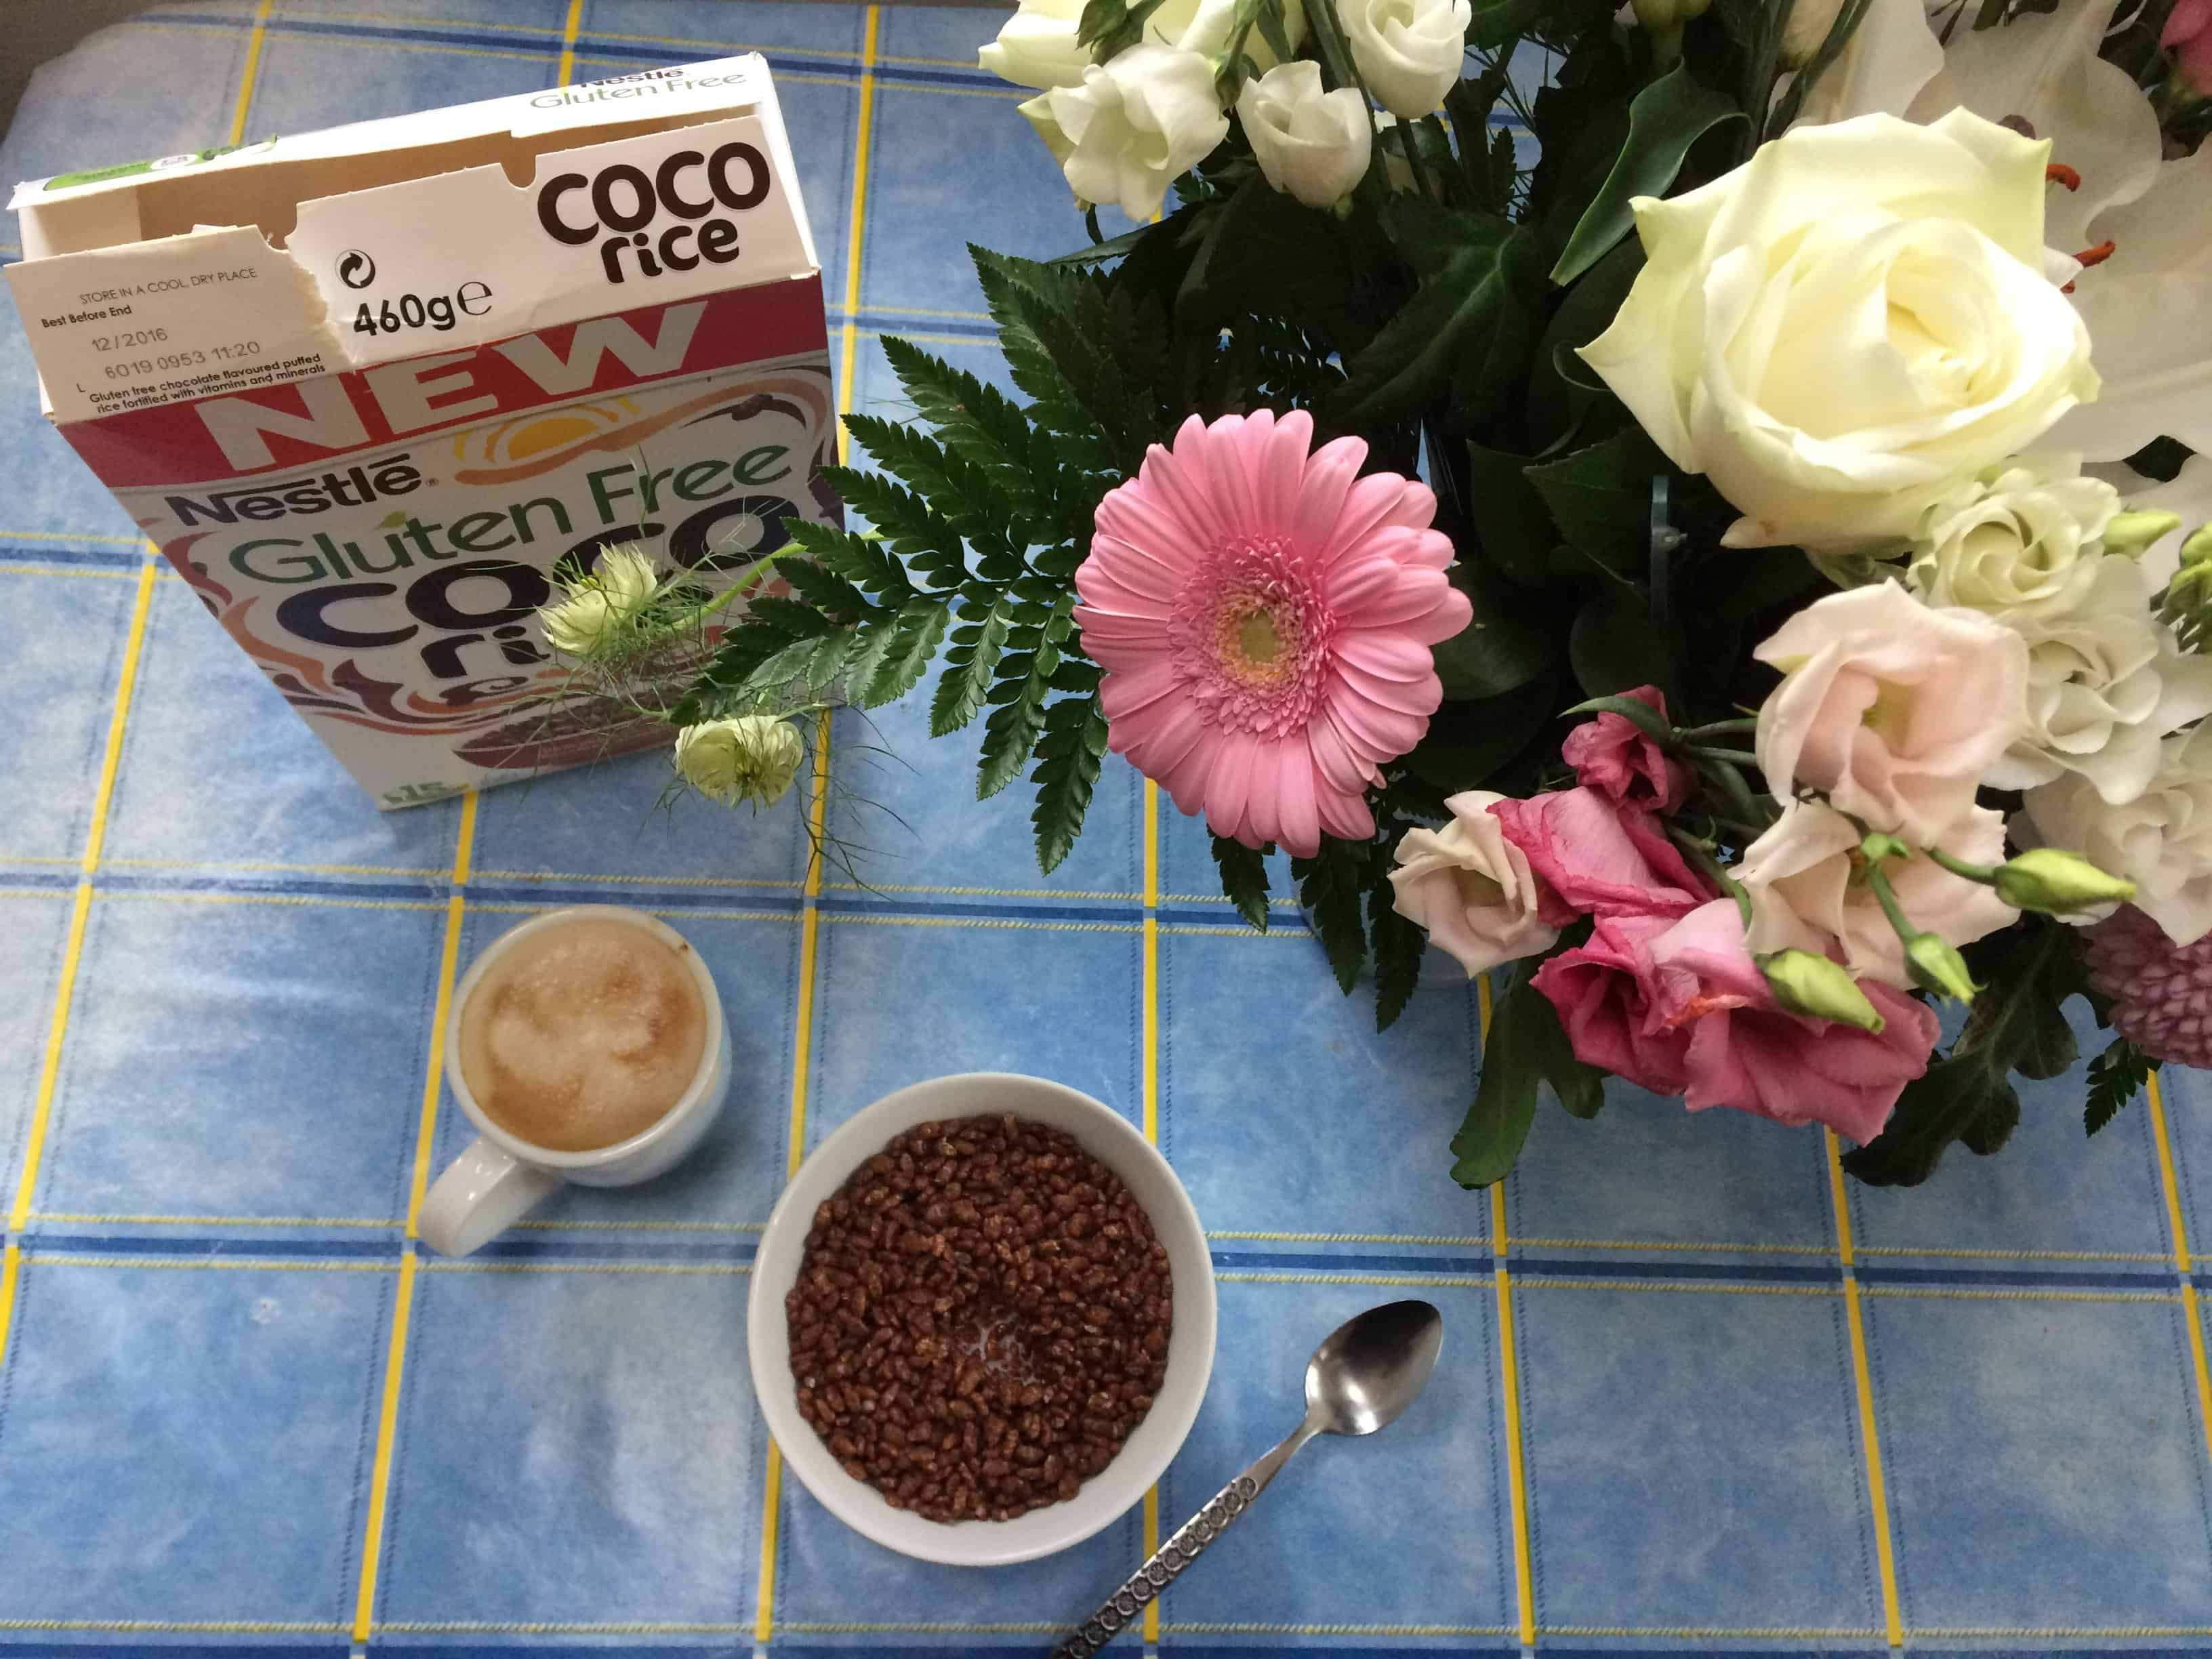 nestle gluten free cocopops and rice pops (2)